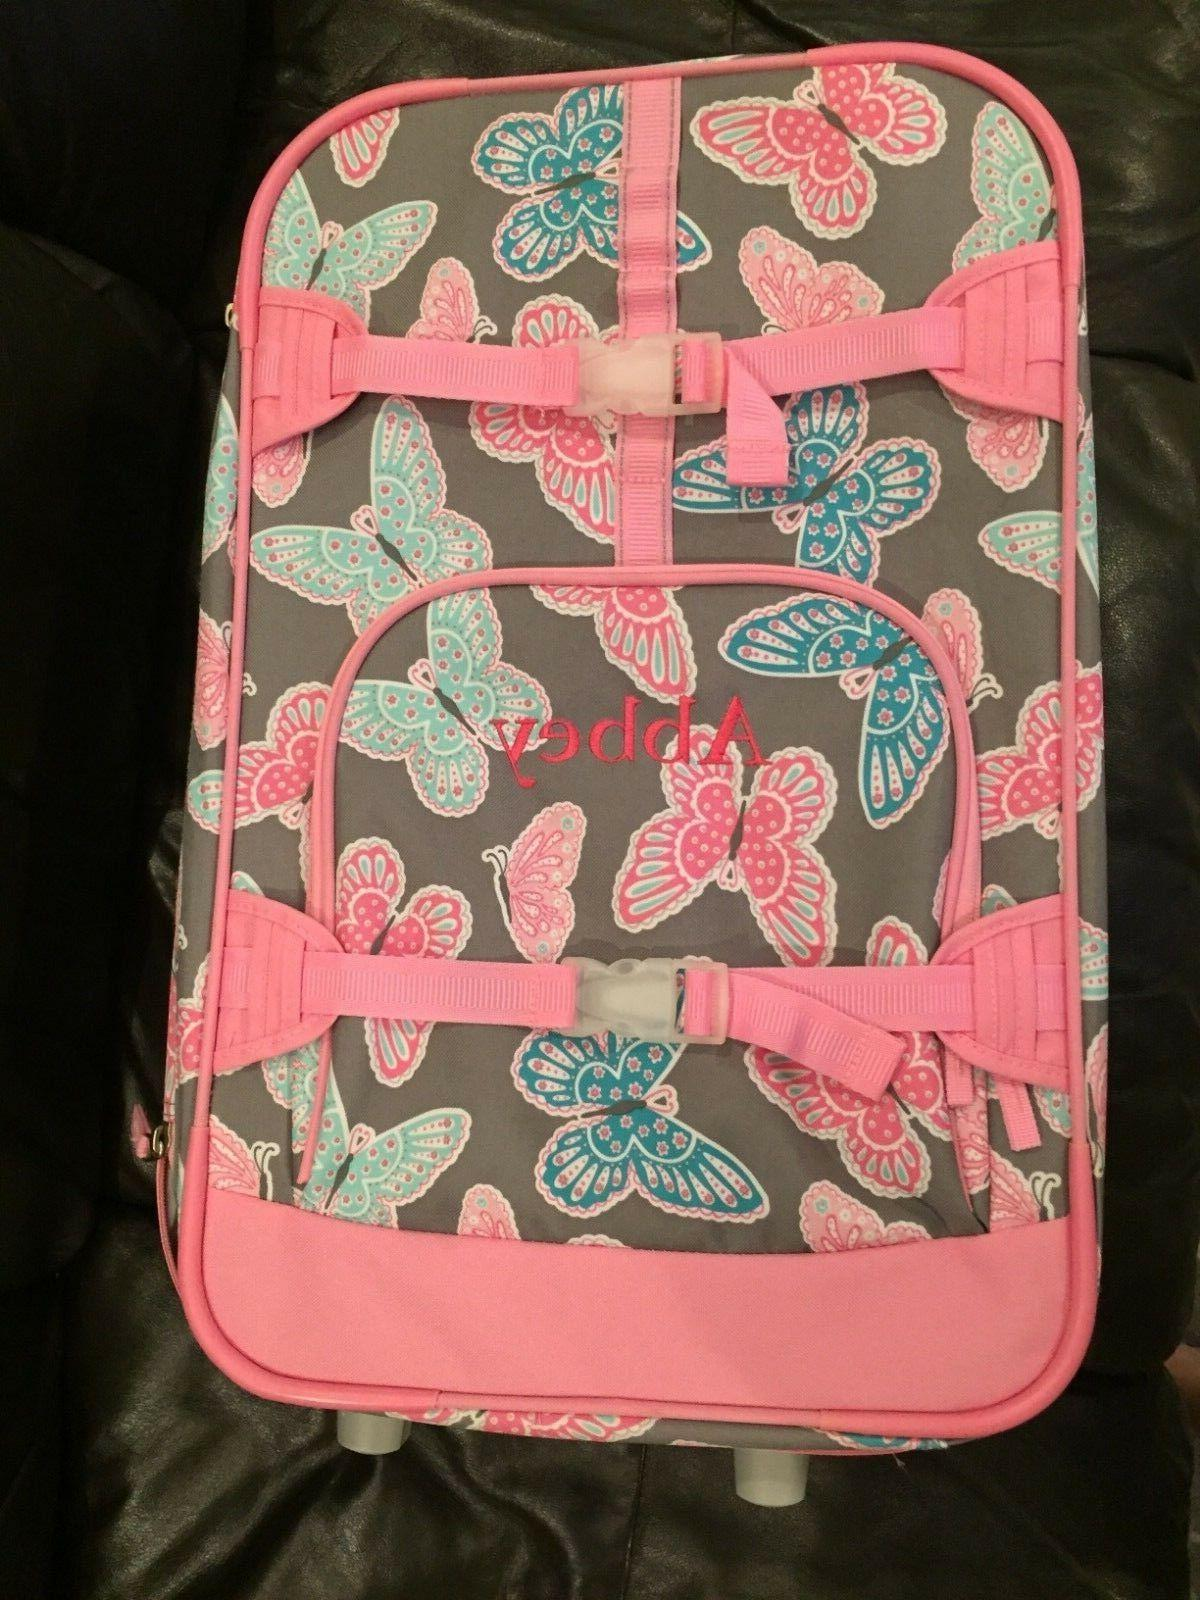 new mackenzie large pink butterfly suitcase luggage